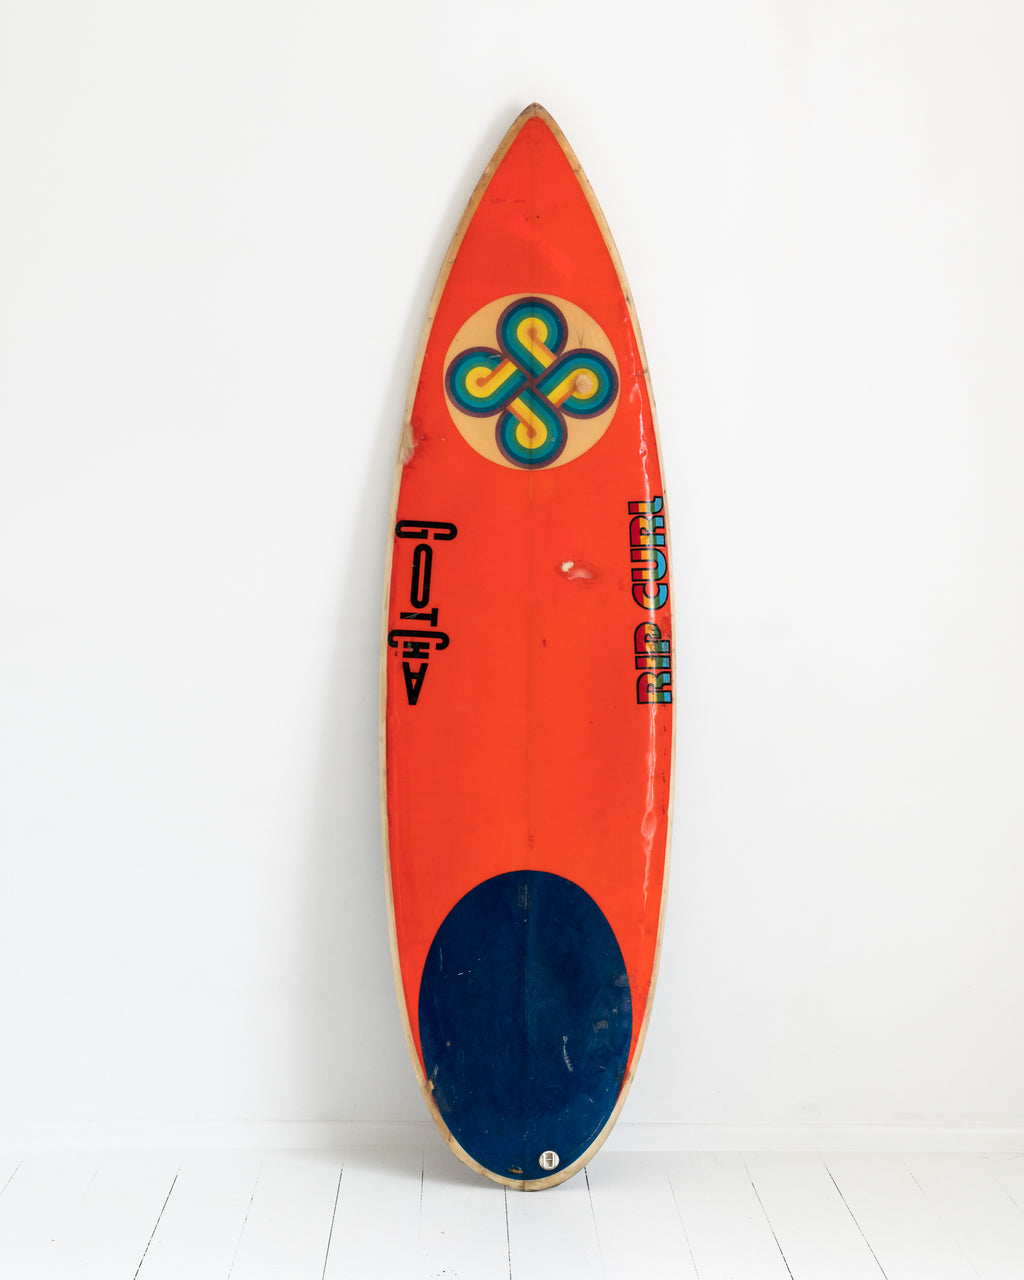 Cheyne Horan Model - 5'10 Ben Lexen Winged Keel Single Fin Shaped by Terry Fitzgerald